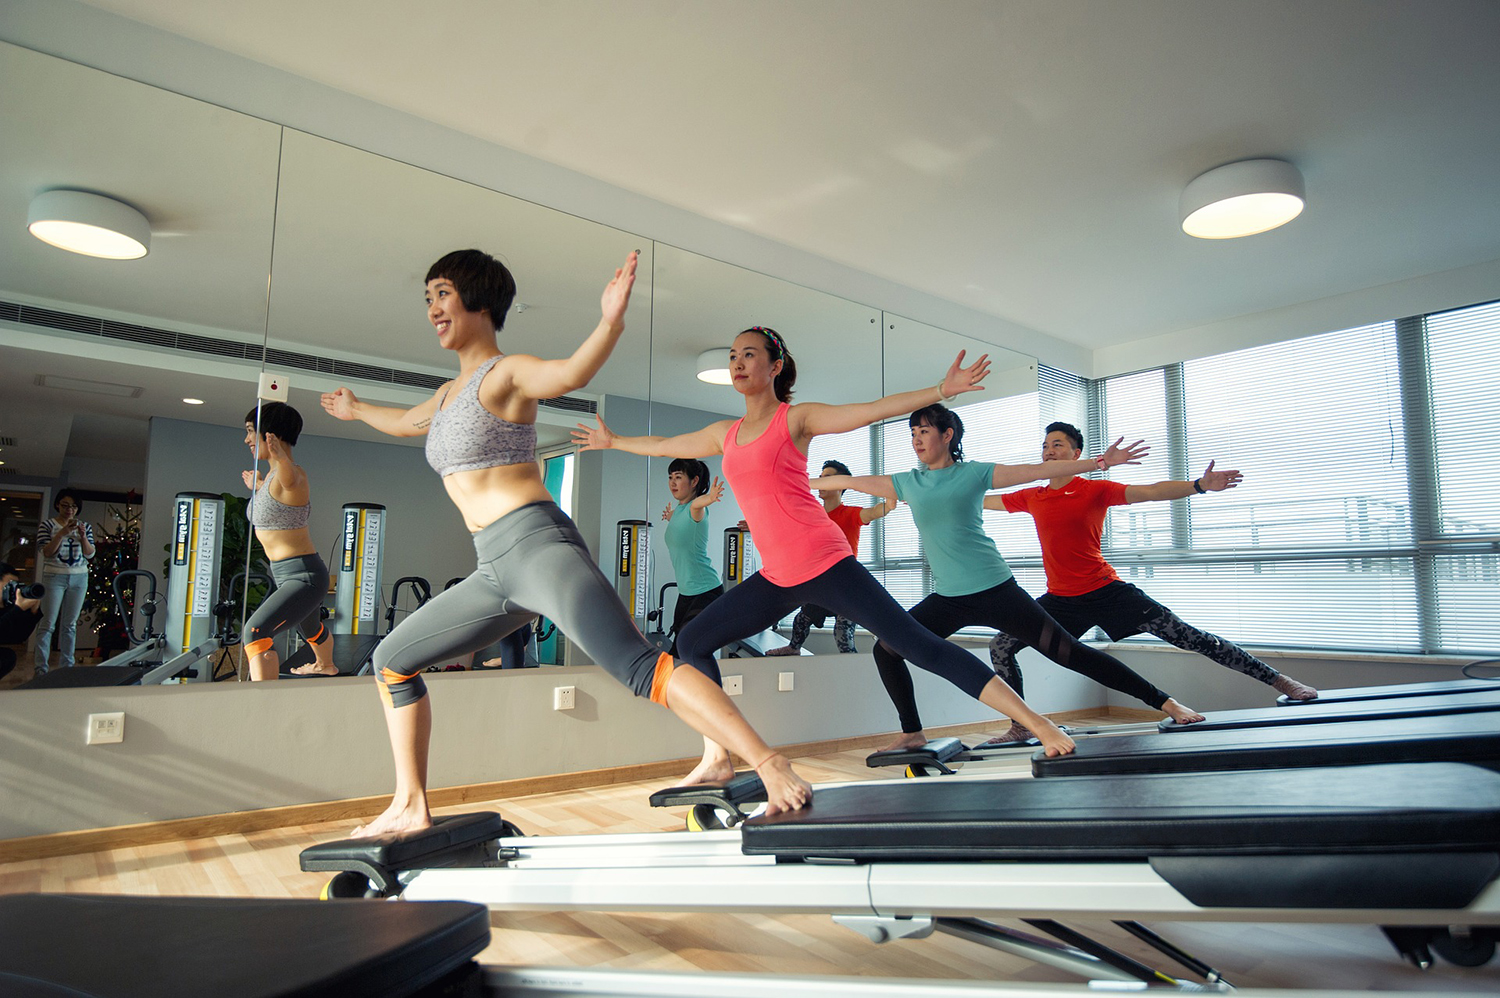 Healthy Women Exercising on Workout Machine